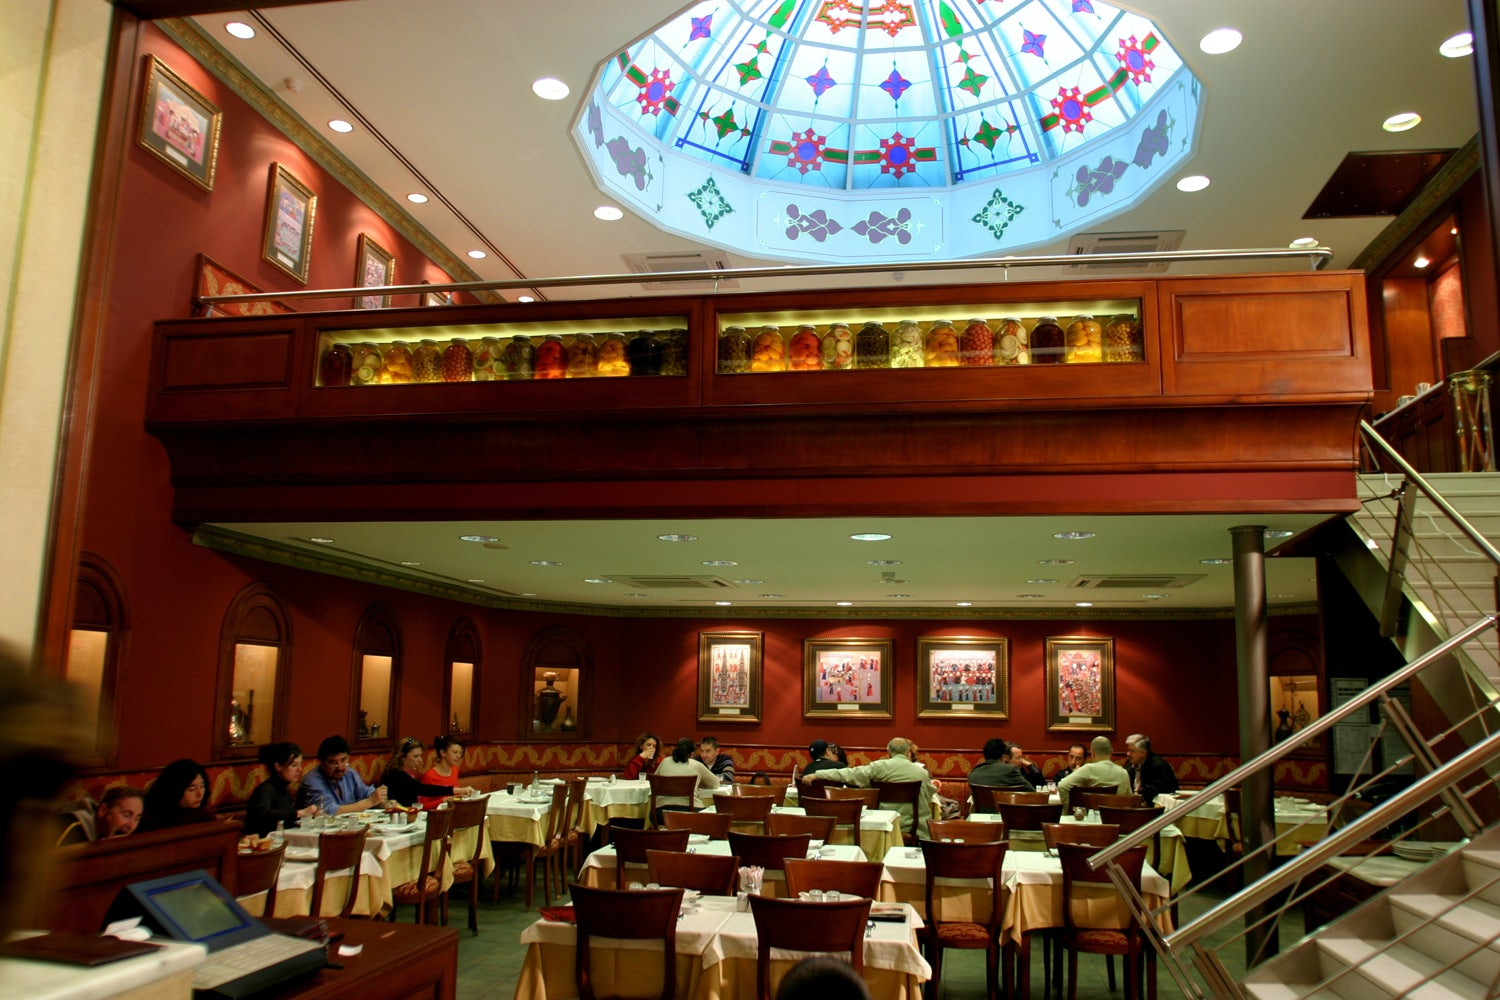 interior and ceiling of Haci Abdullah restaurant